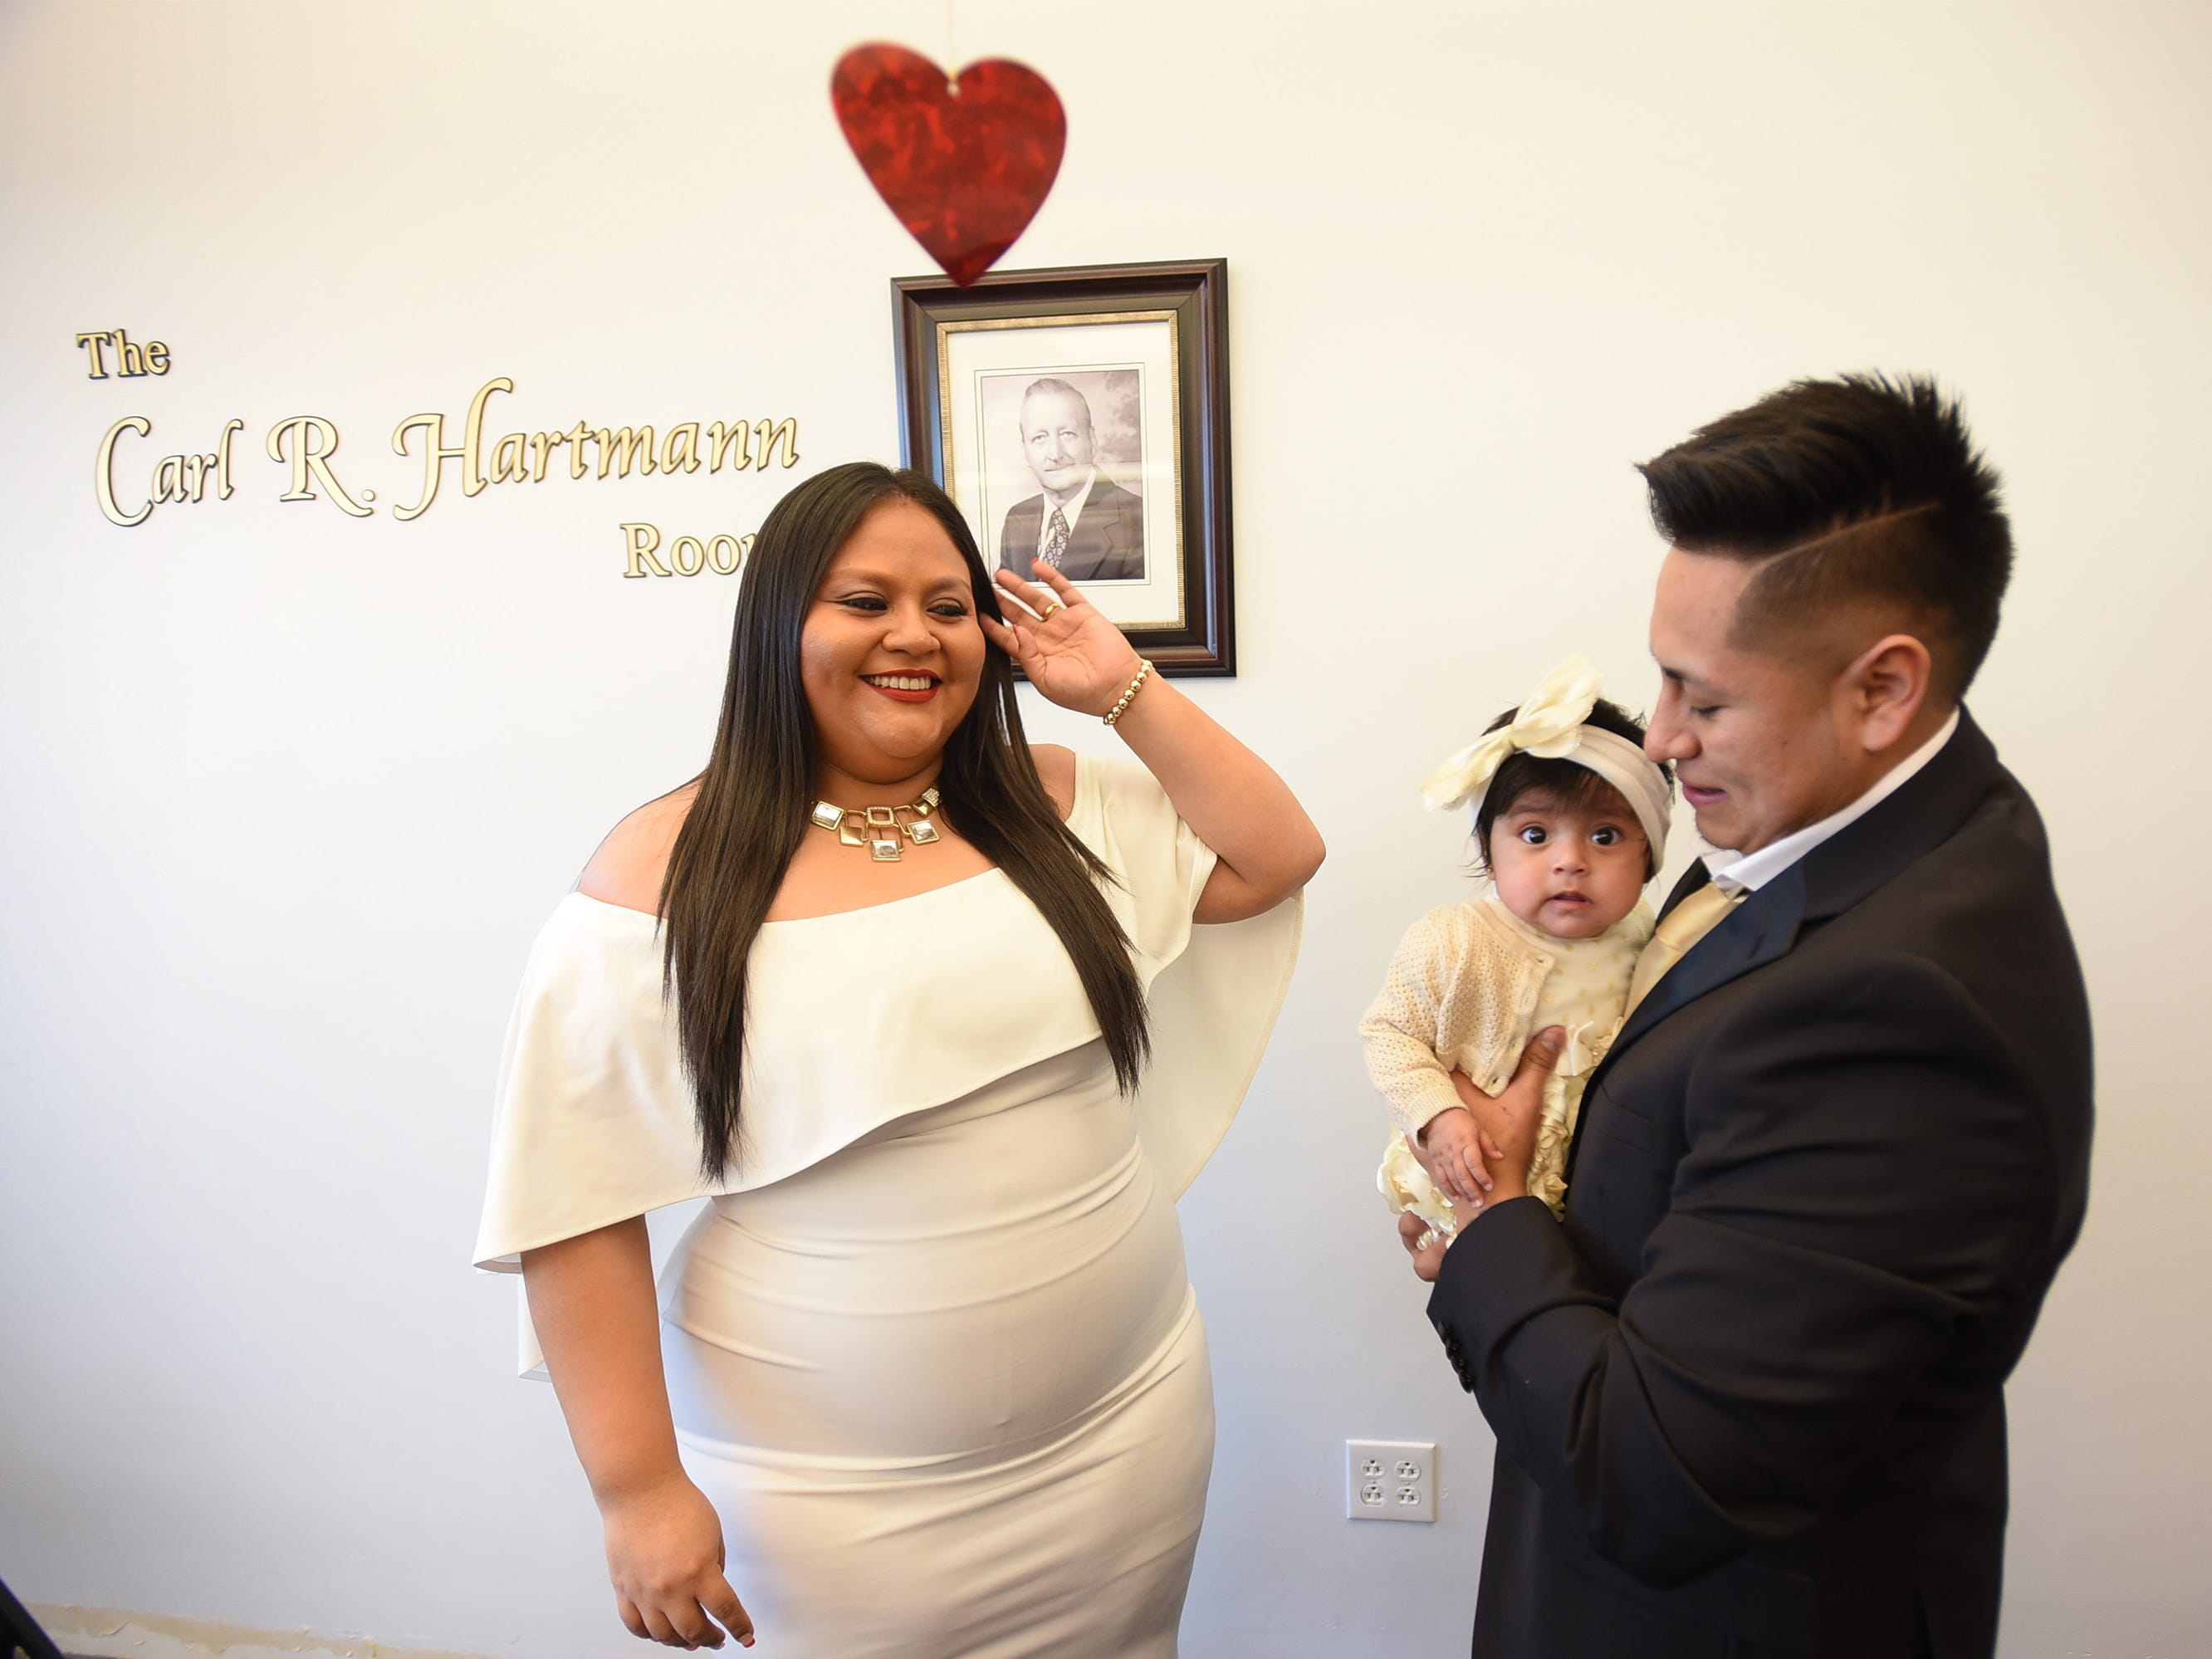 After being announced as a husband and a wife, Yesenia Urgiles and Cesar Guartan of Hackensack, prepare to have photos taken together with their five month daughter Lilian following their wedding ceremony, located at Bergen County Plaza in Hackensack on 02/14/19.